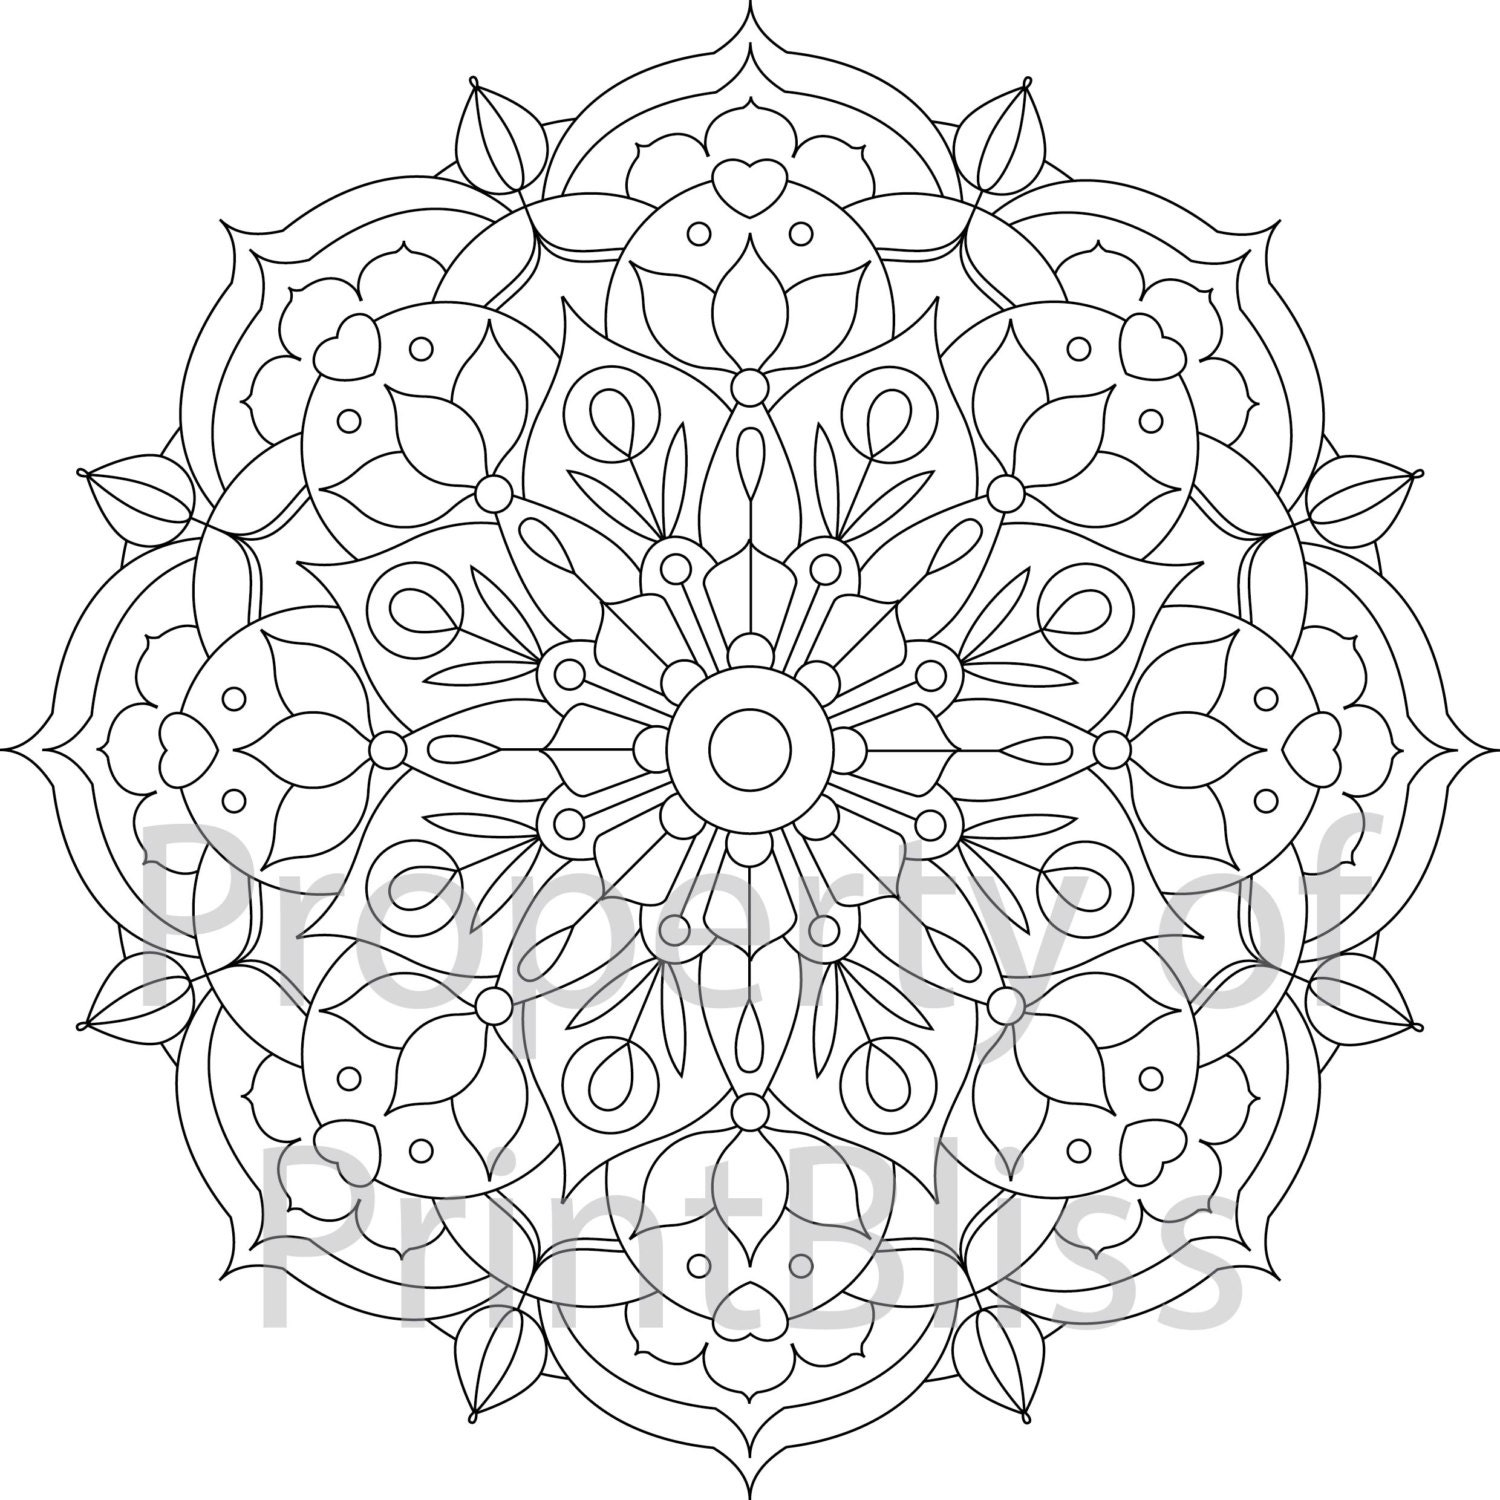 18 flower mandala printable coloring page. Black Bedroom Furniture Sets. Home Design Ideas